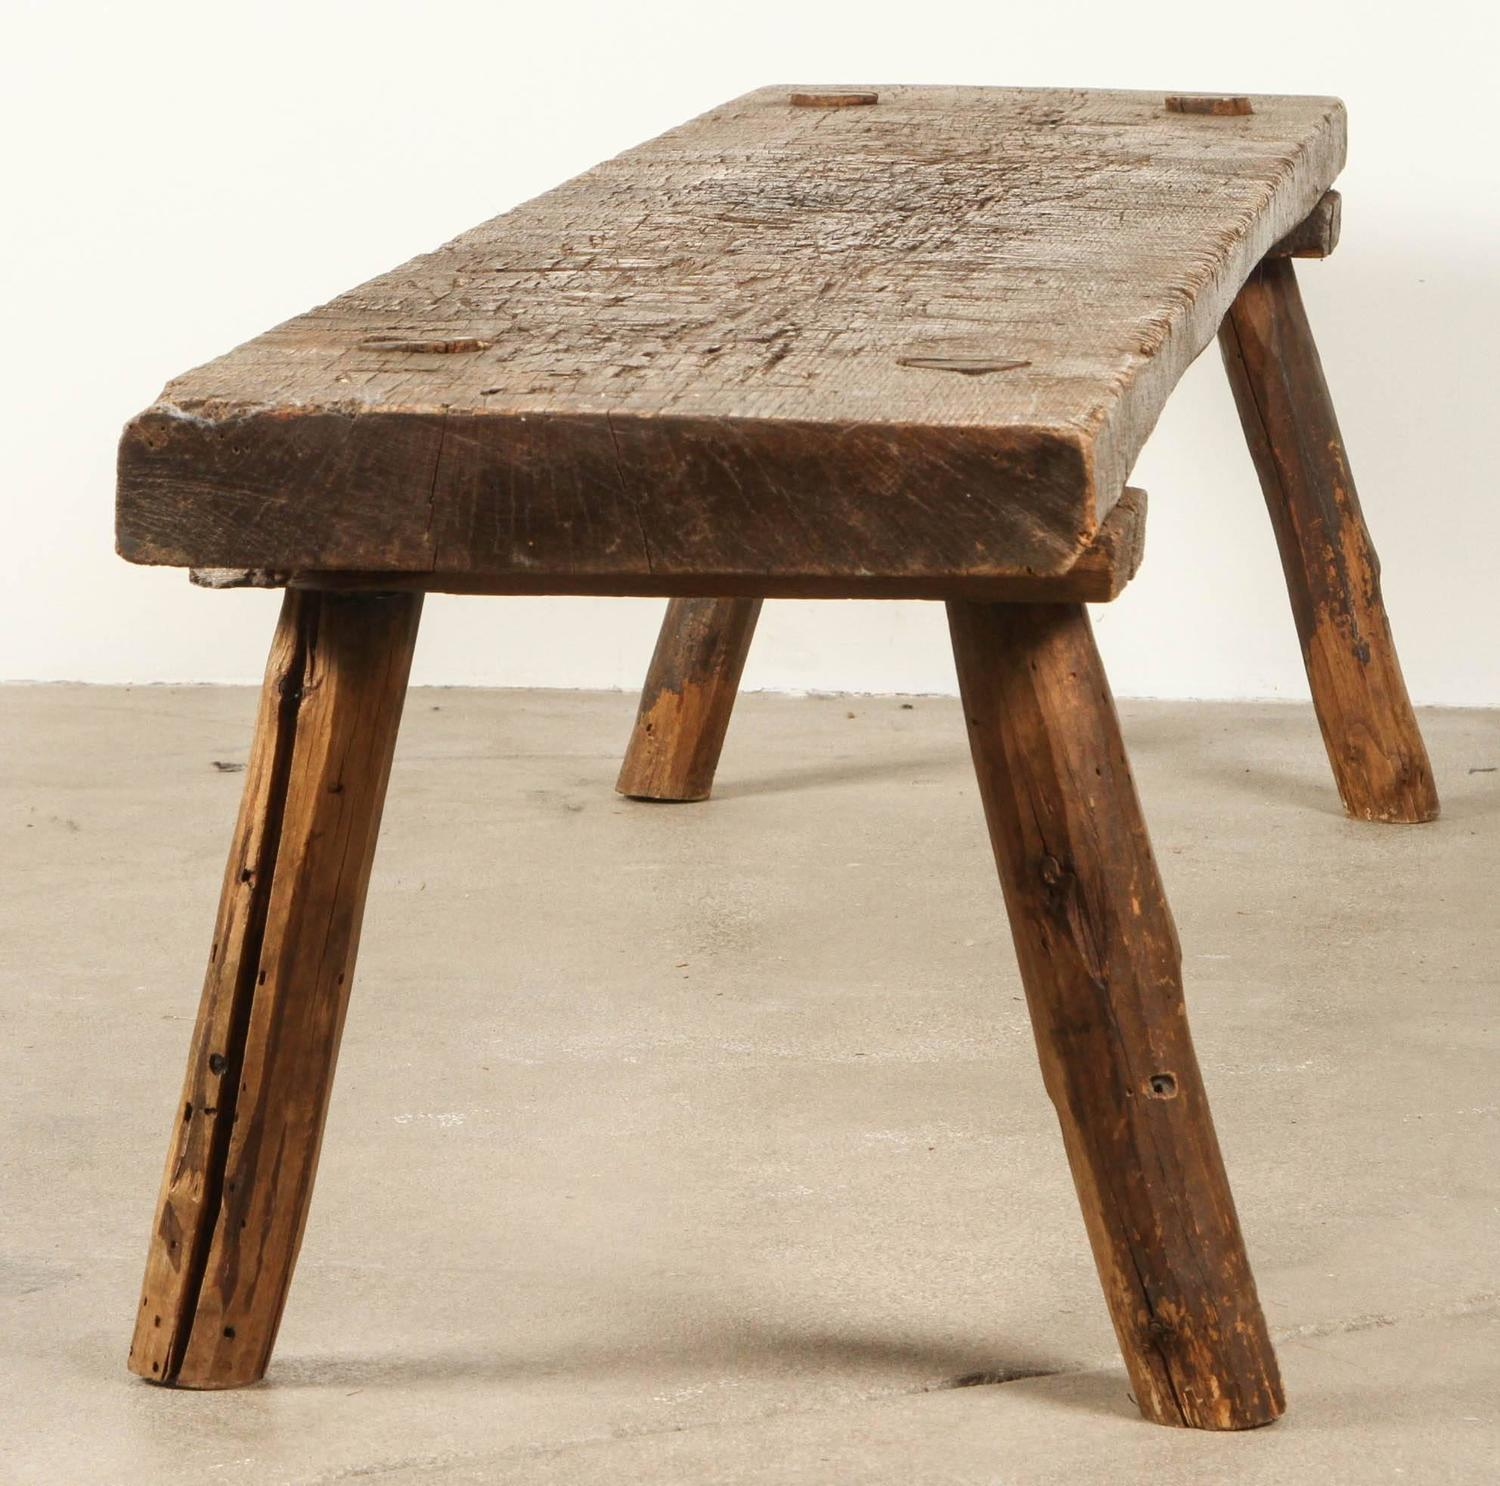 Italian Long Primitive Rustic Bench For Sale At 1stdibs